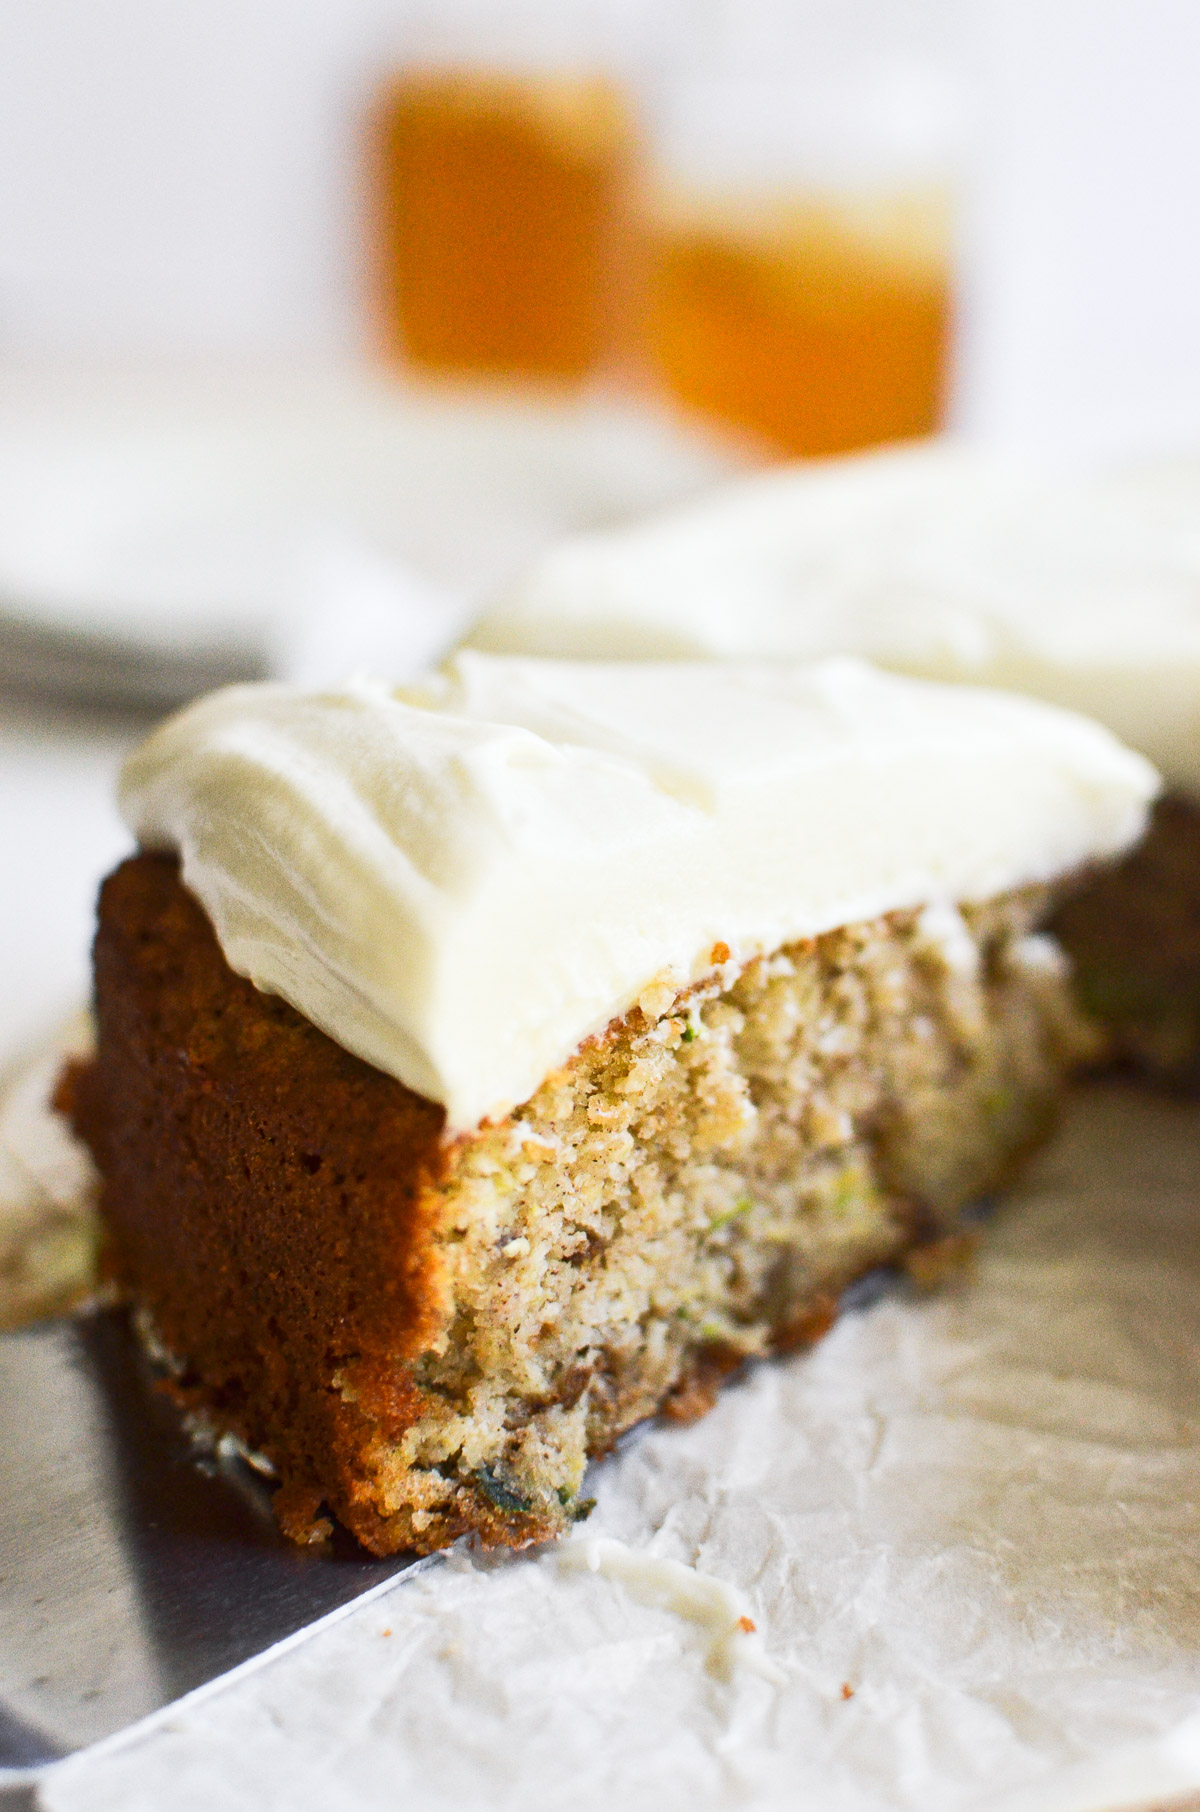 A slice of zucchini cake being pulled out with a cake server.